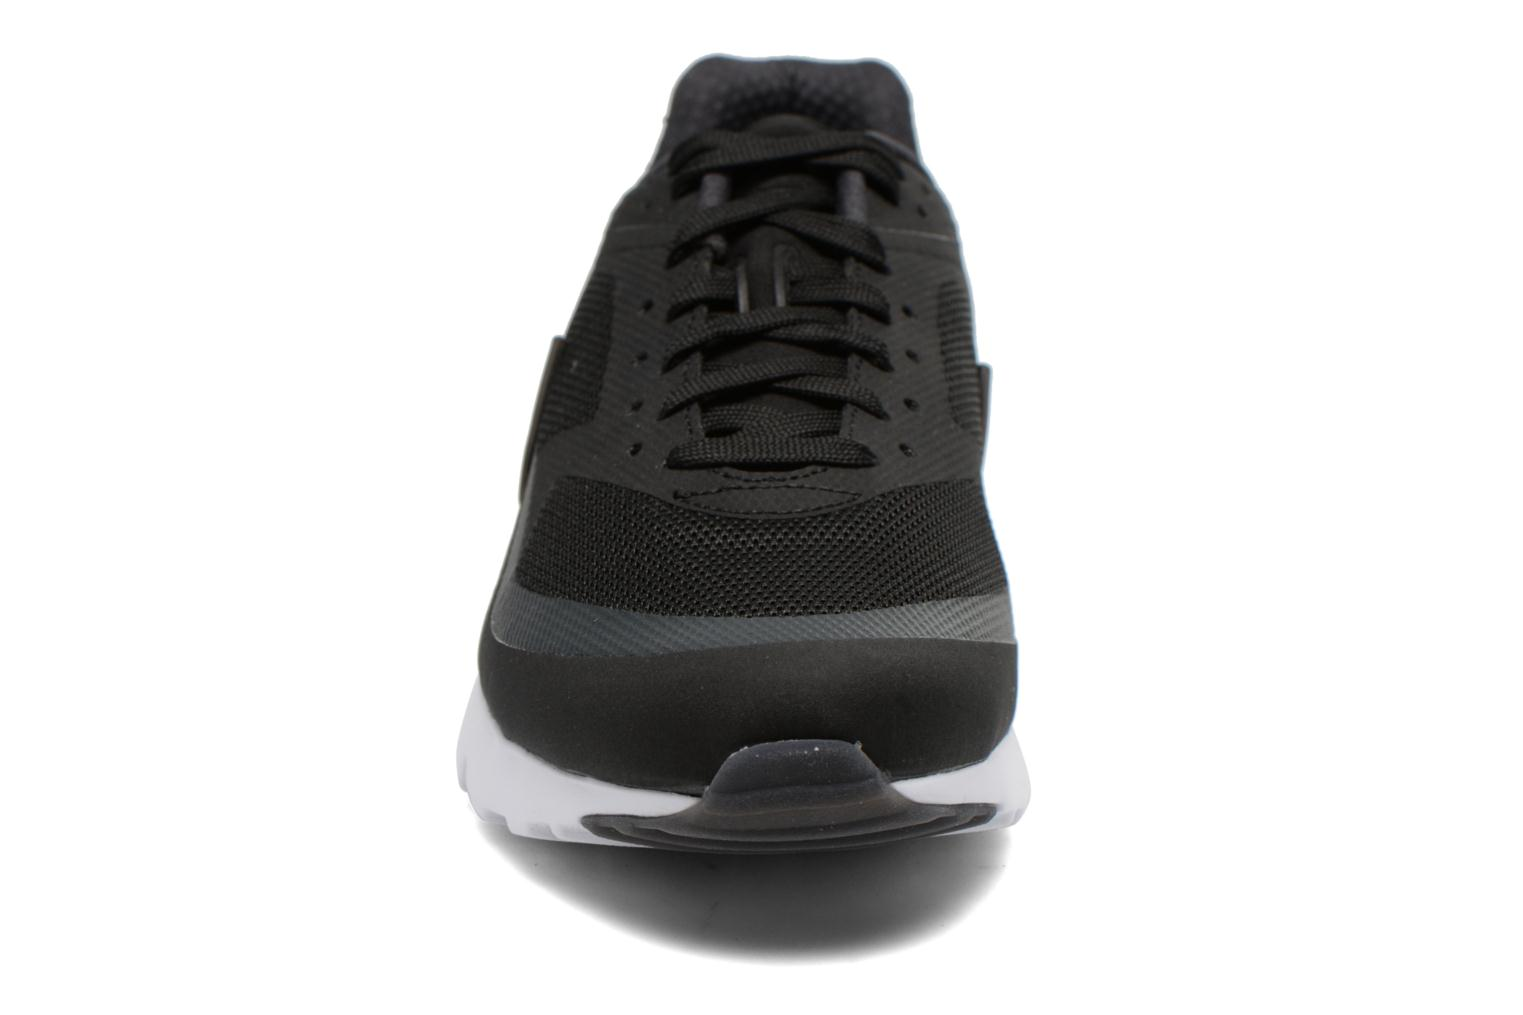 Nike Air Max Bw Ultra Black/Black-Anthracite